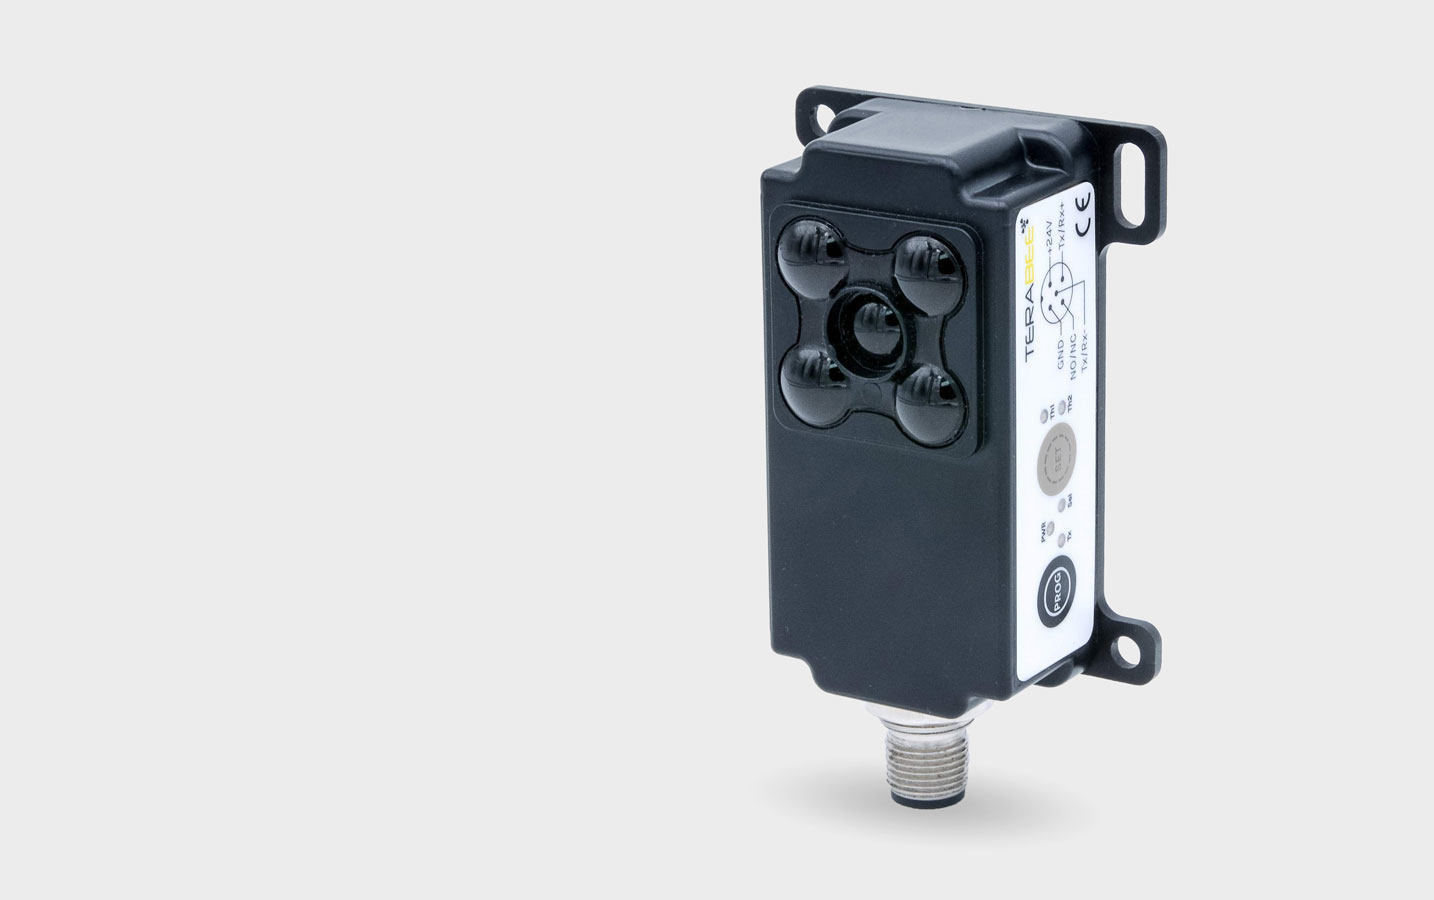 Terabee Sensors Modules Terabee launch their first industrial-grade smart distance sensor